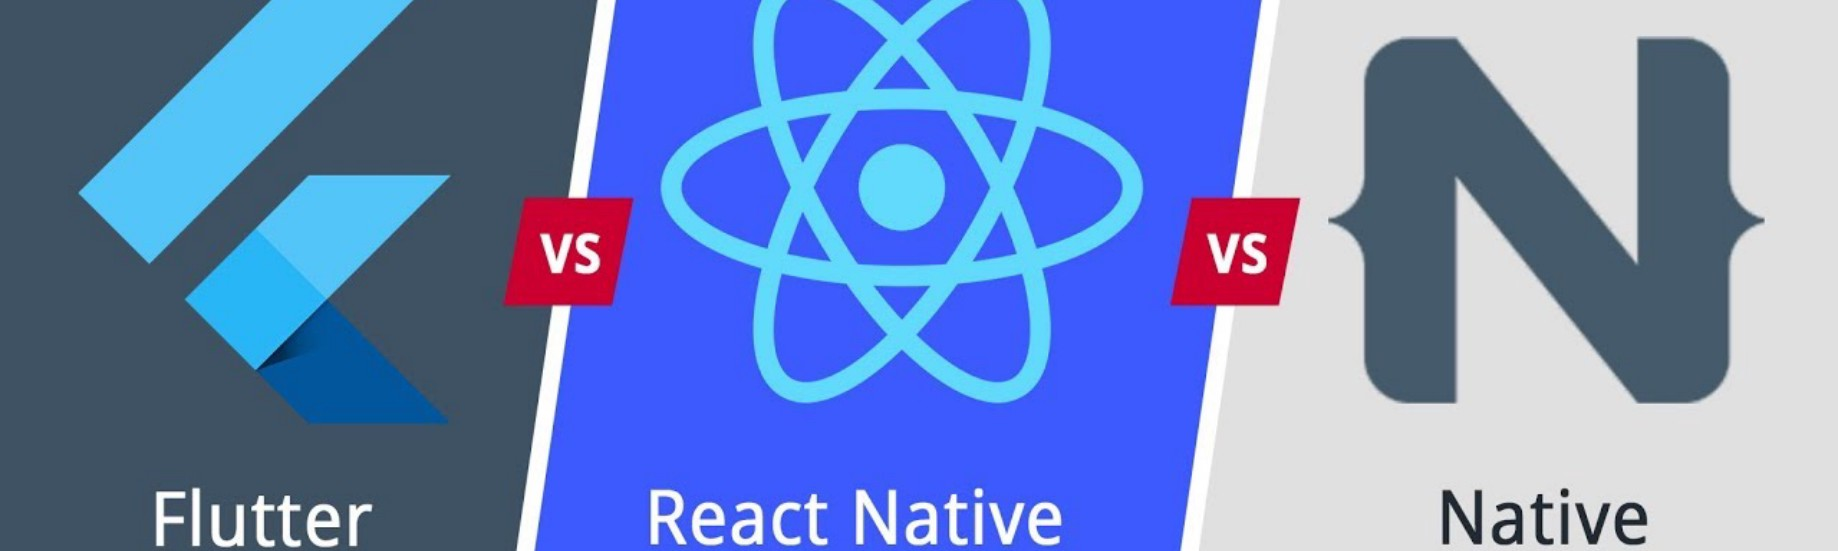 Comparison of React Native, Flutter and Native Android Mobile Frameworks